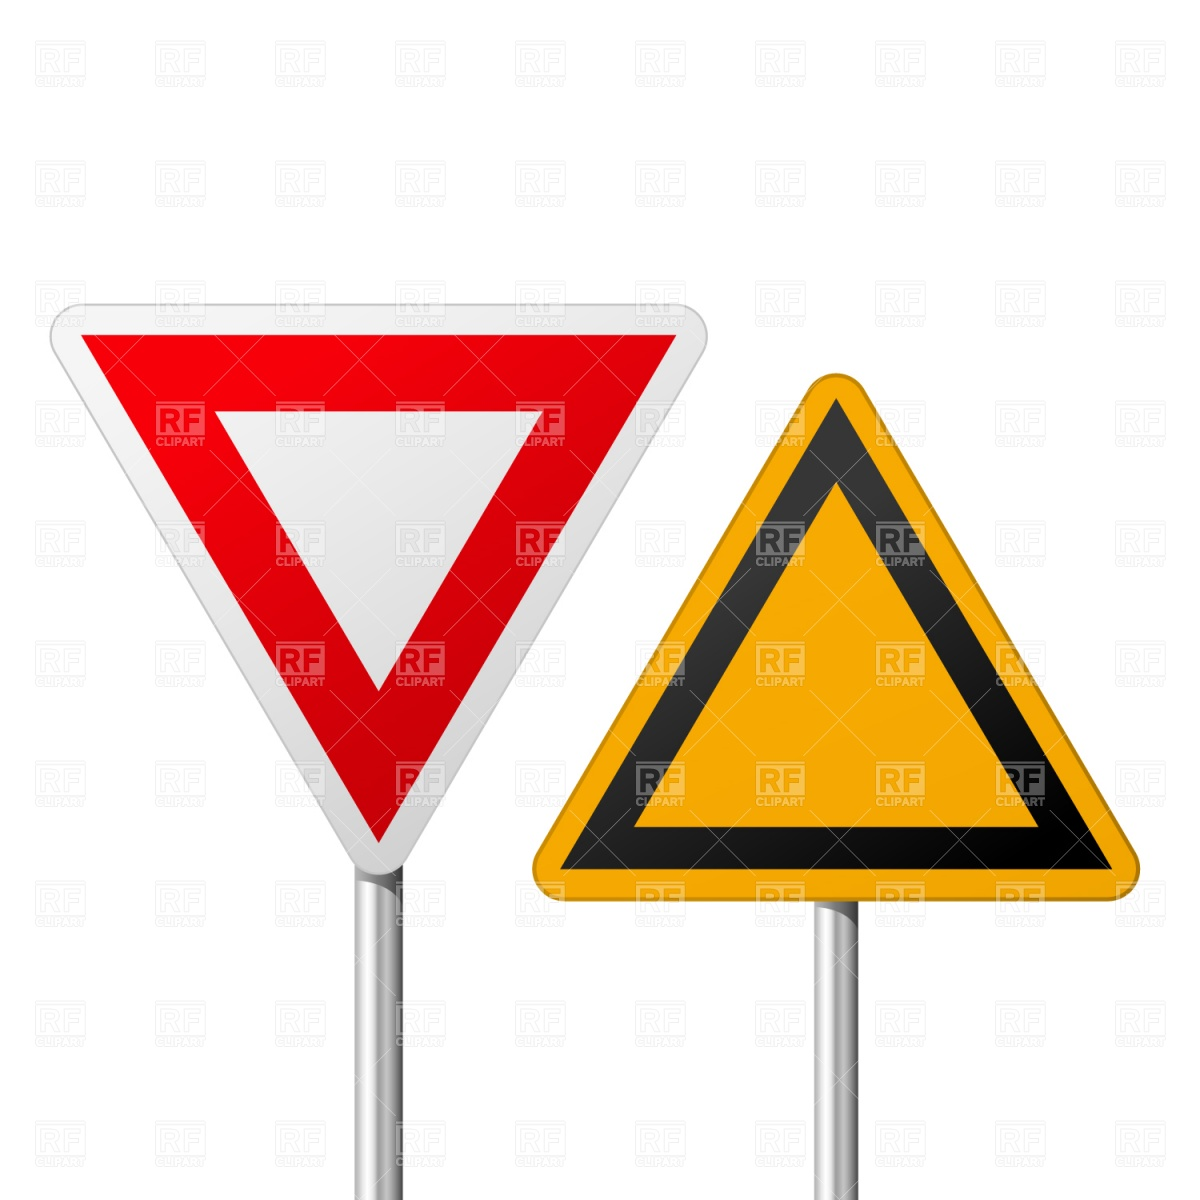 Blank road yield signs Vector Image #1503.